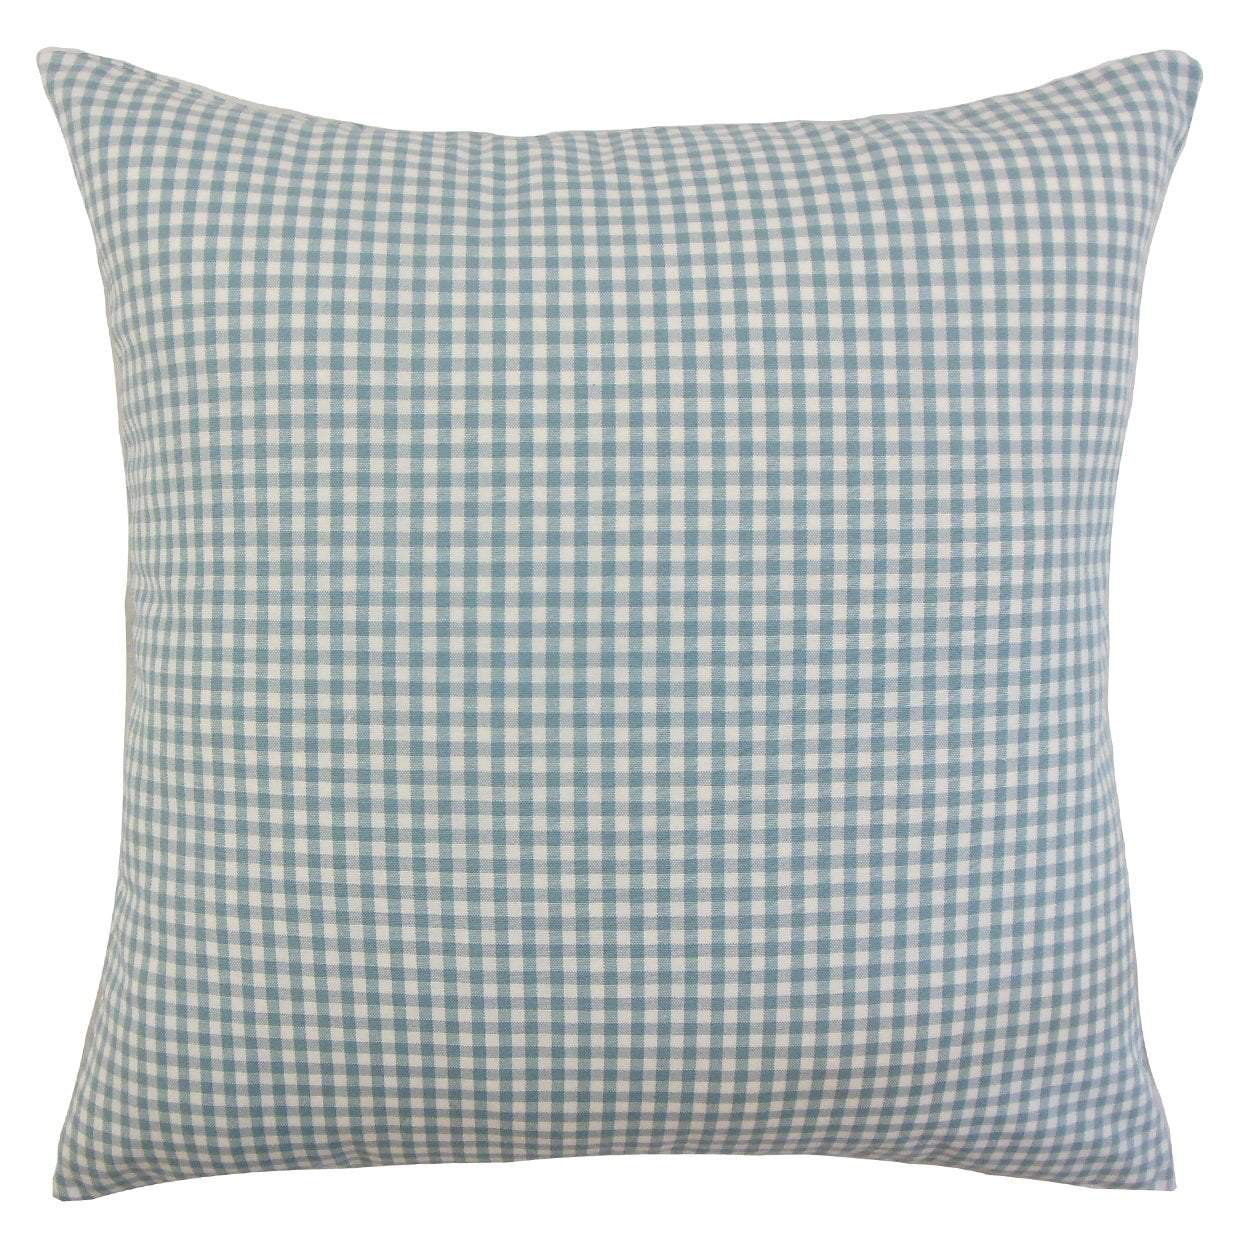 Cotton Plaid Preppy Throw Pillow Cover